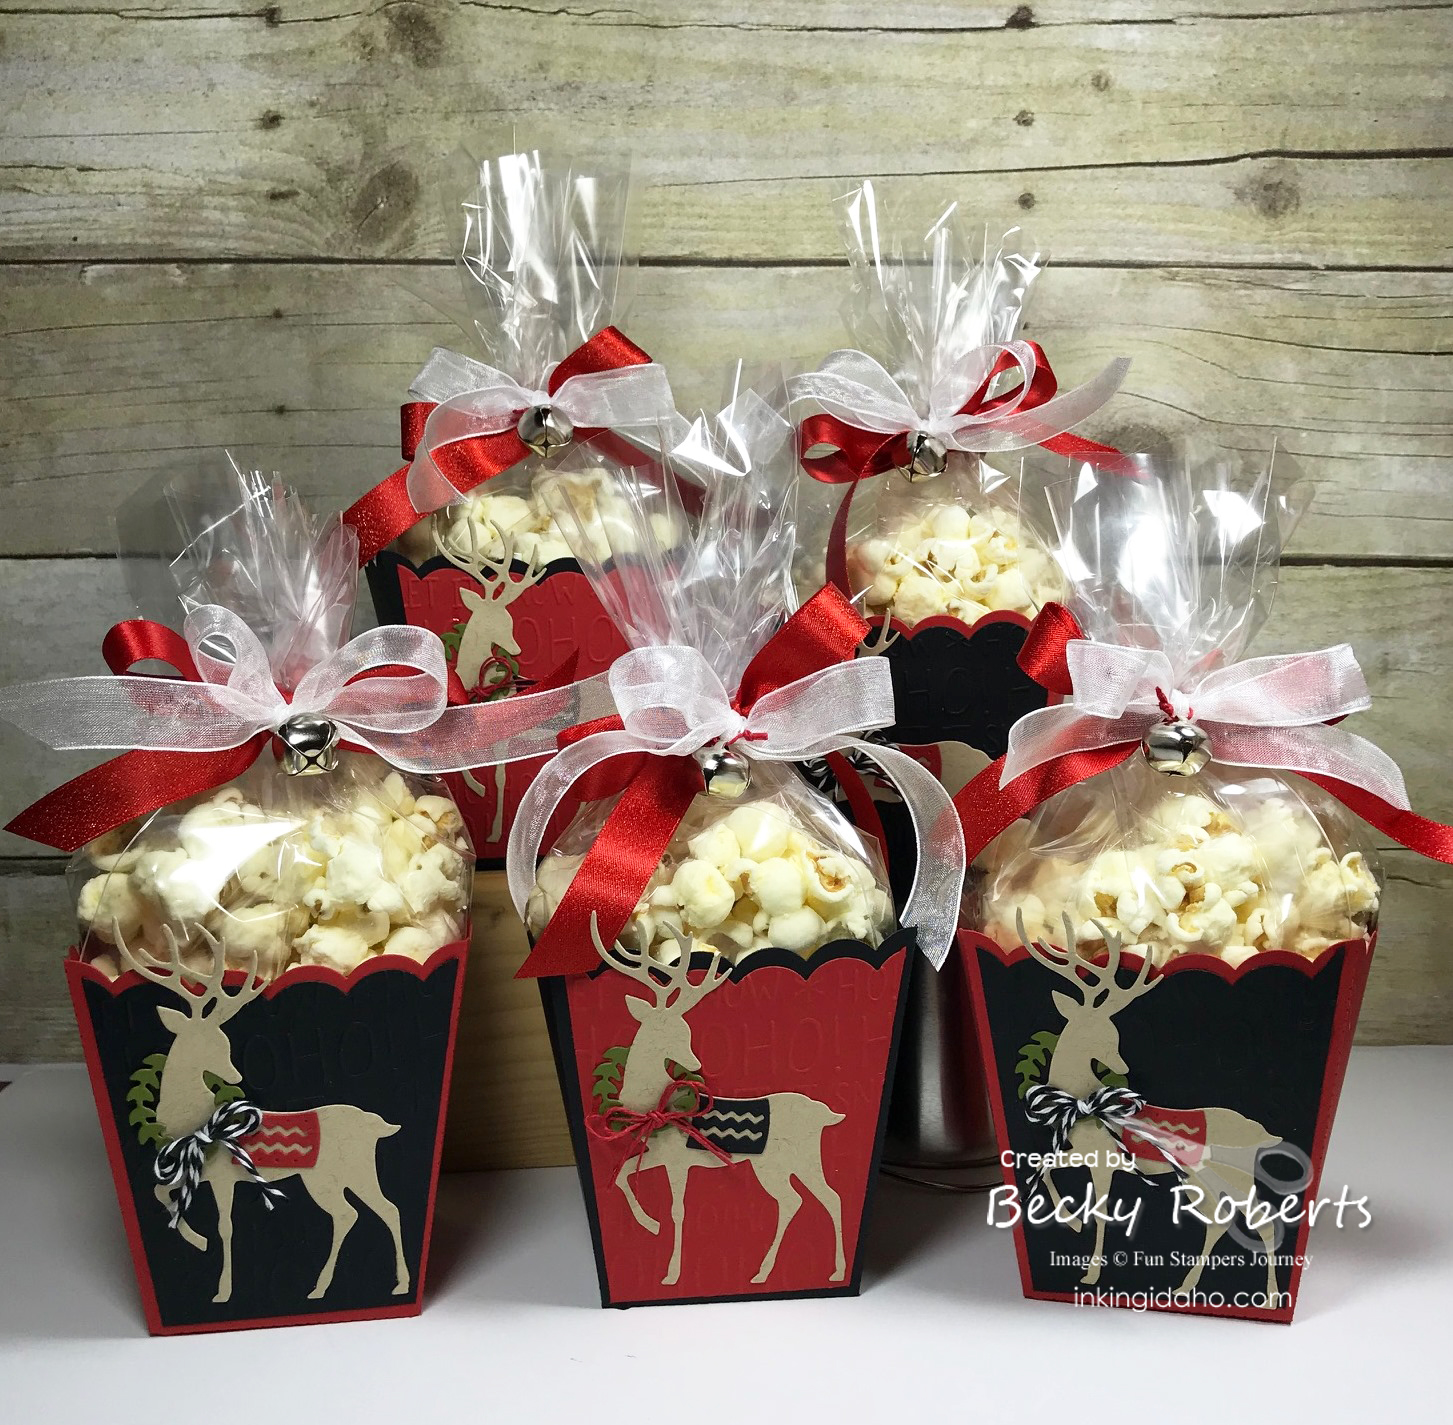 Giveaways For Christmas Party: Inking Idaho: Local Team Christmas Party